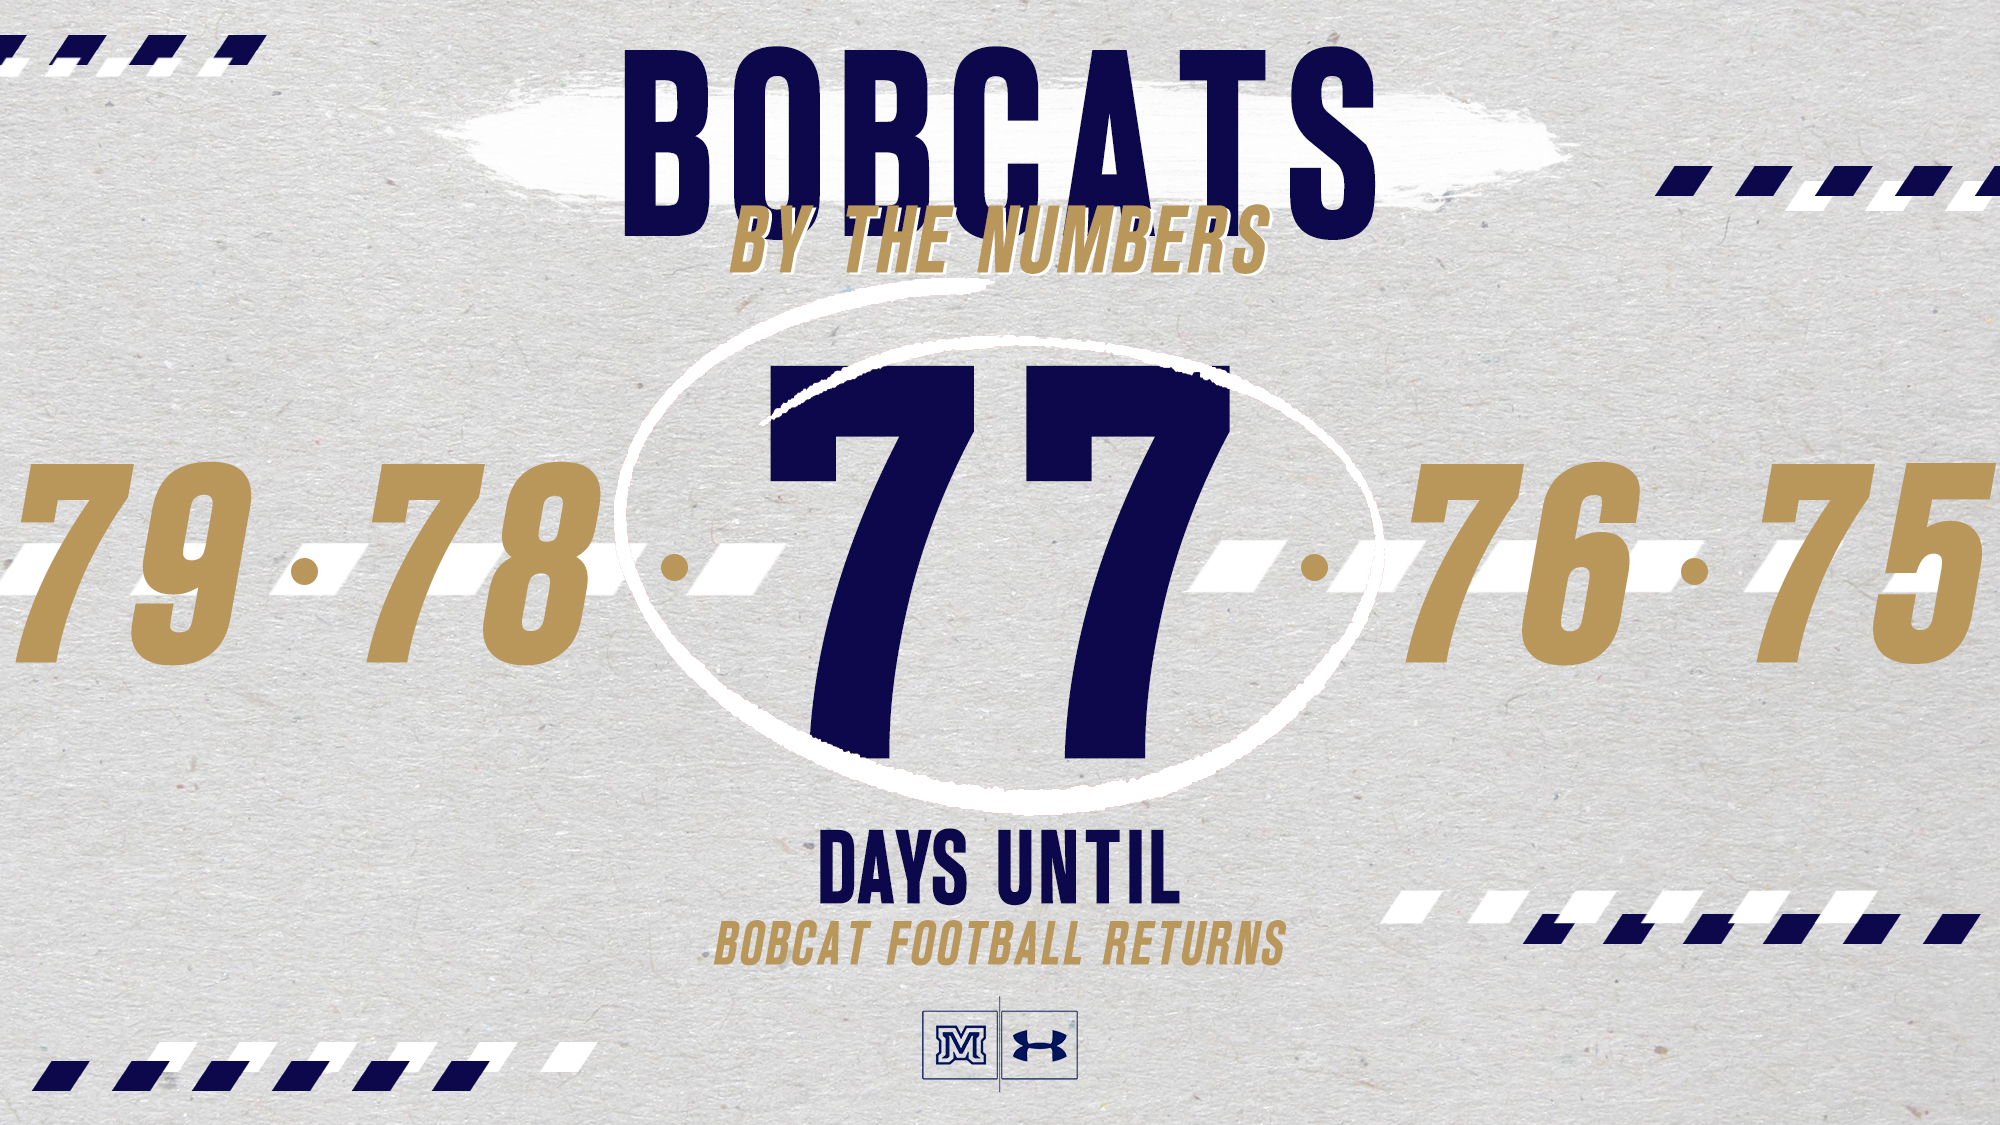 BOBCATS BY THE NUMBERS: 77 Days Before Kickoff, and a 77-point Outburst in California